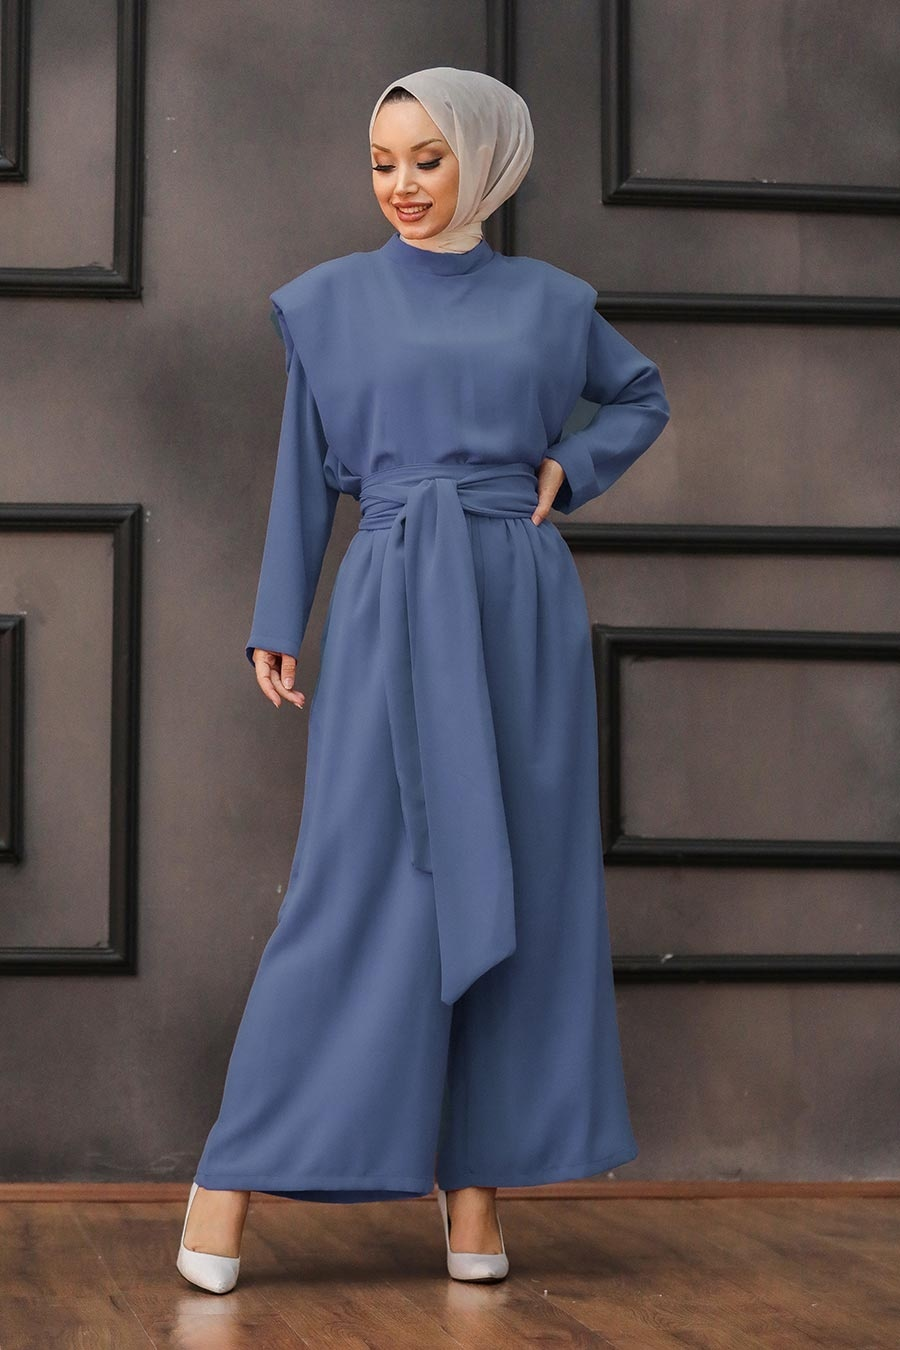 Women's Belted Indigo Modest Outfit – 2 Pieces